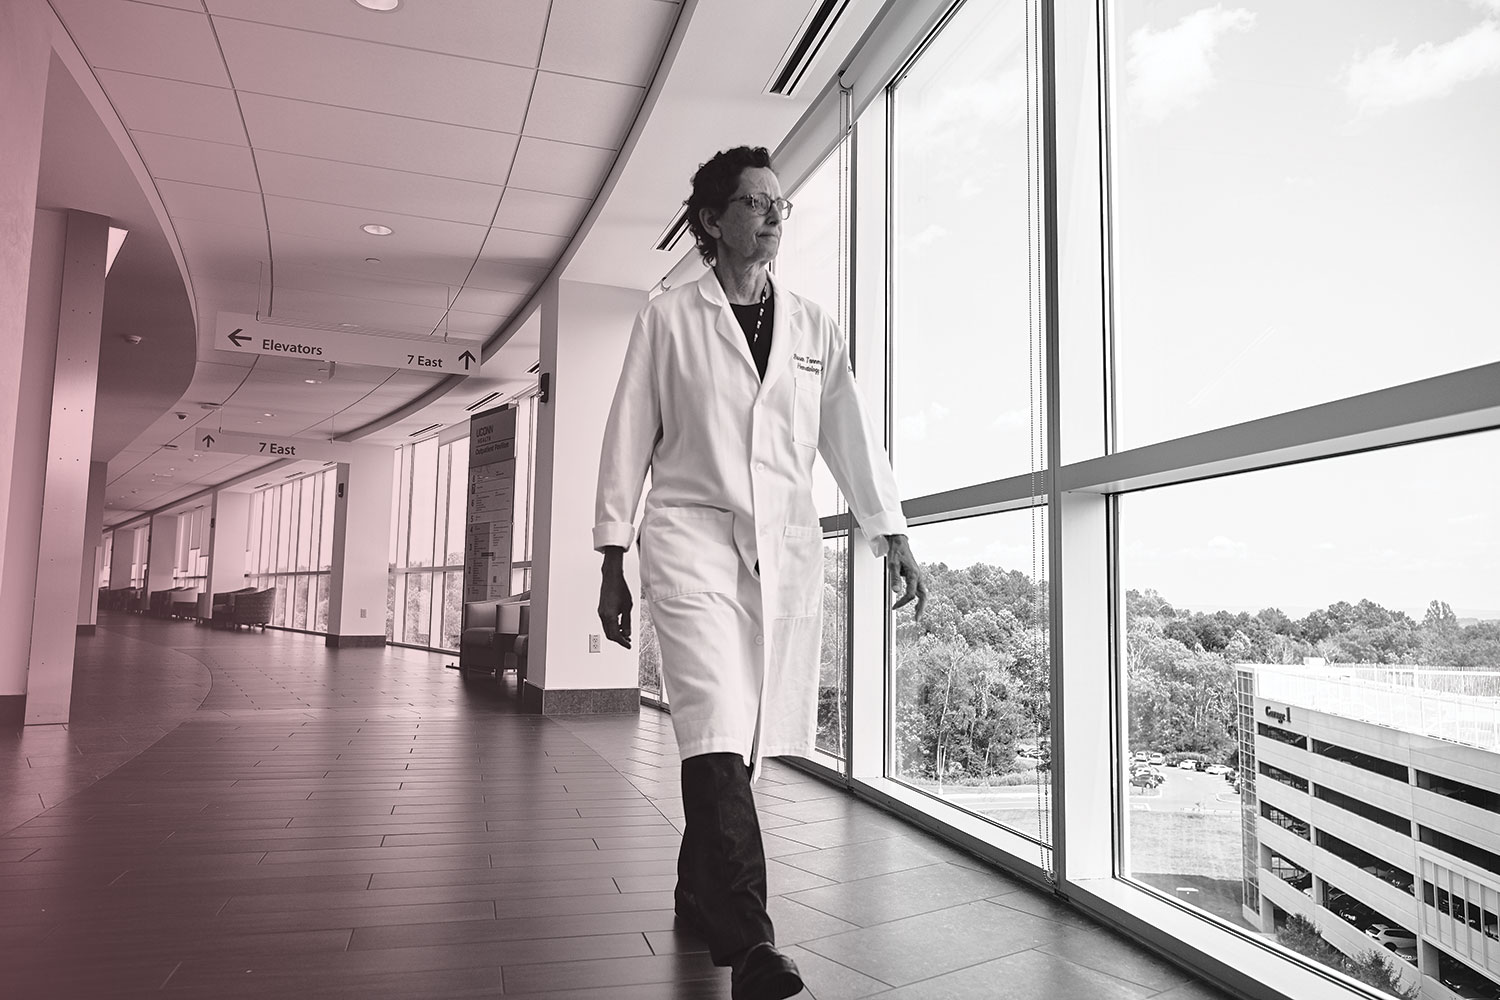 UConn medical oncologist Dr. Susan Tannenbaum initiated the multidisciplinary focus of the breast program, connecting patient care to research and bringing accreditation through the American College of Surgeons, before handing the reins to surgeon Dr. Christina Stevenson.